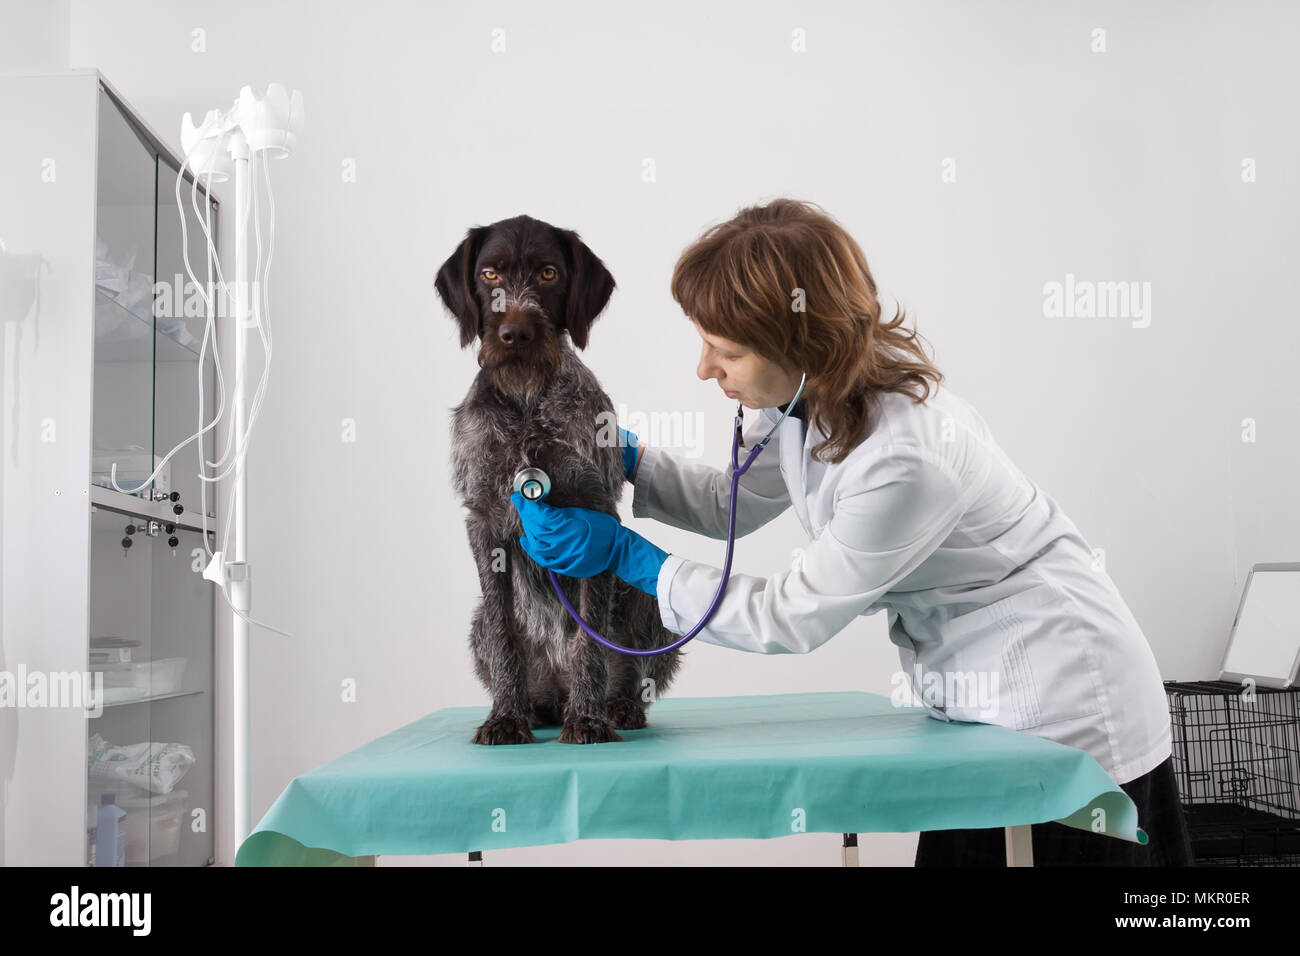 veterinarian examining dog with stethoscope in vet clinic - Stock Image